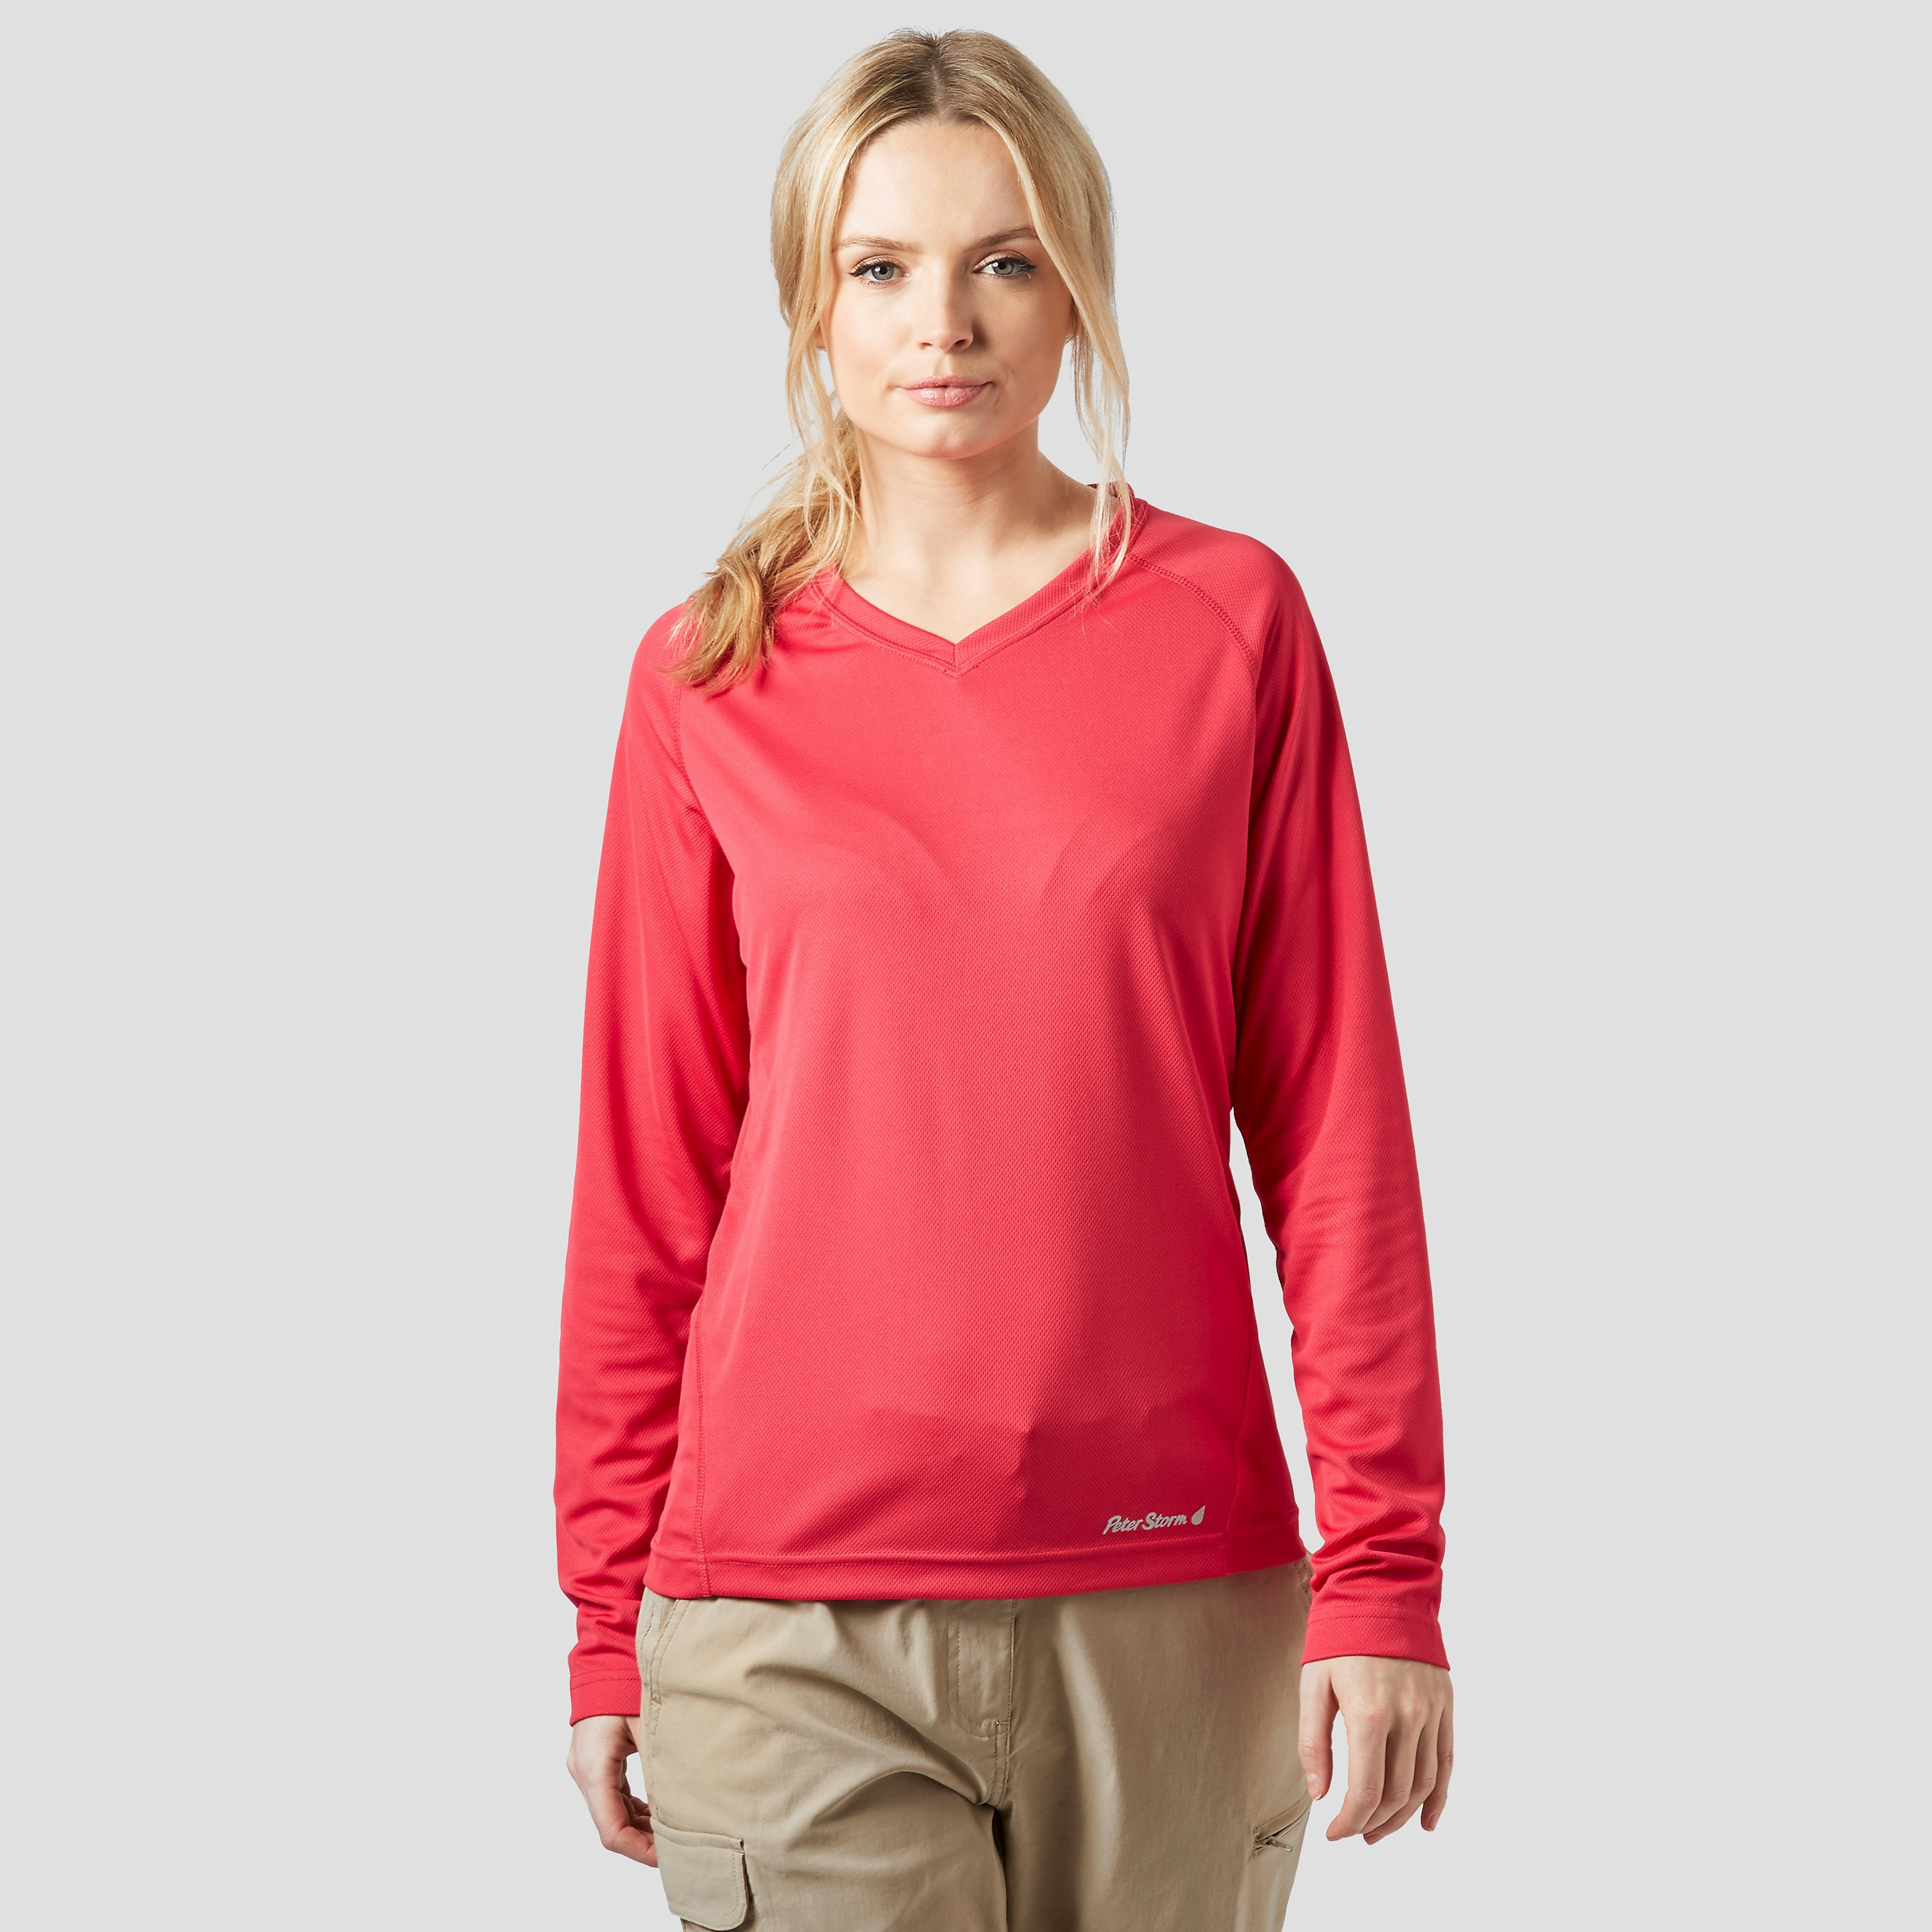 PETER STORM Women's Tech Long Sleeve V Neck T-Shirt